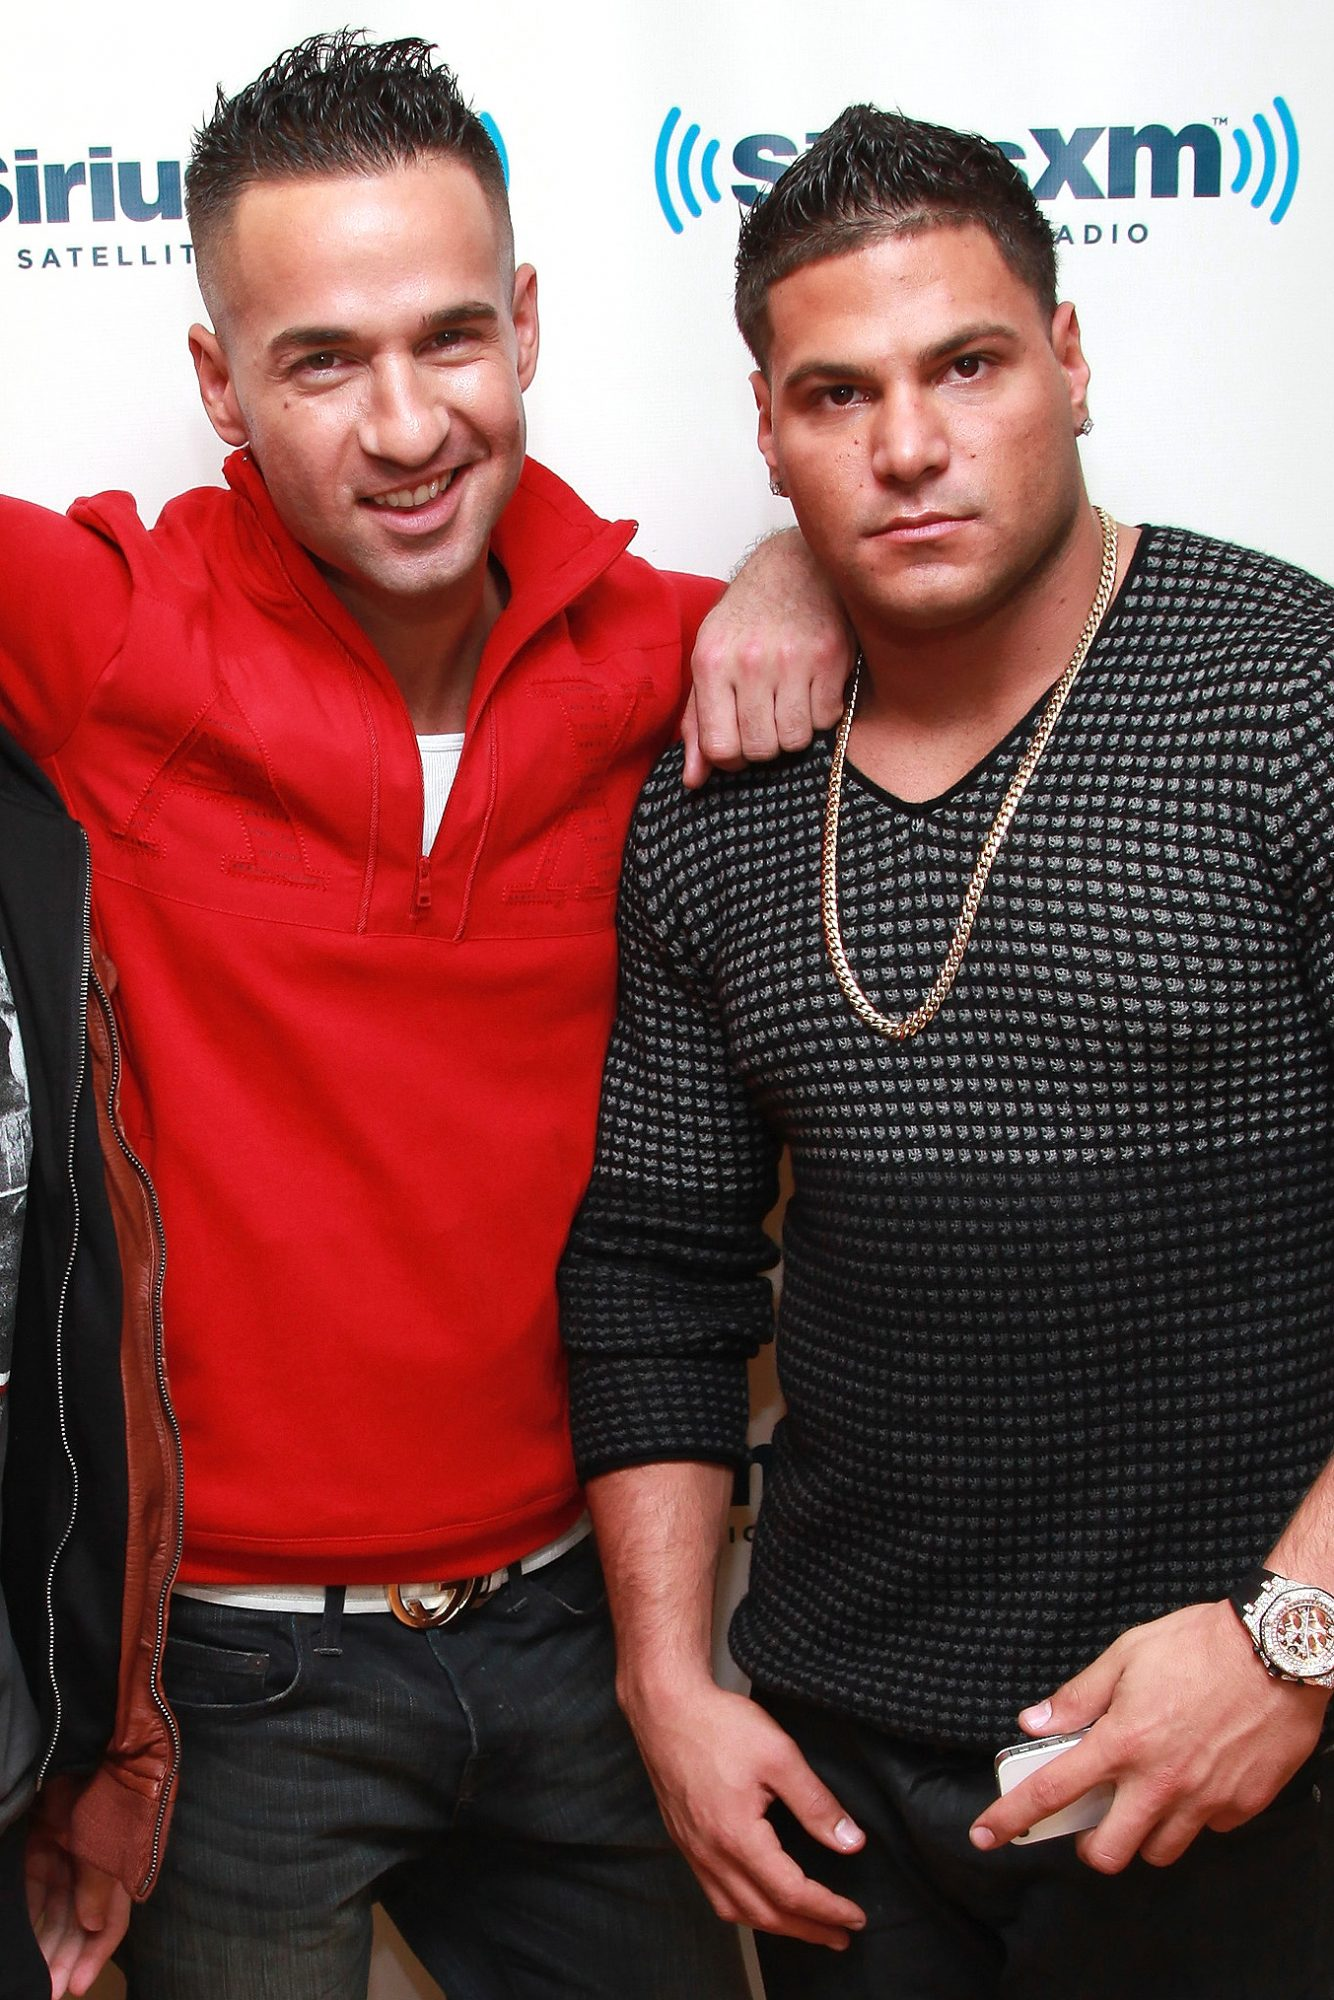 Mike Sorrentino and Ronnie Ortiz-Magro